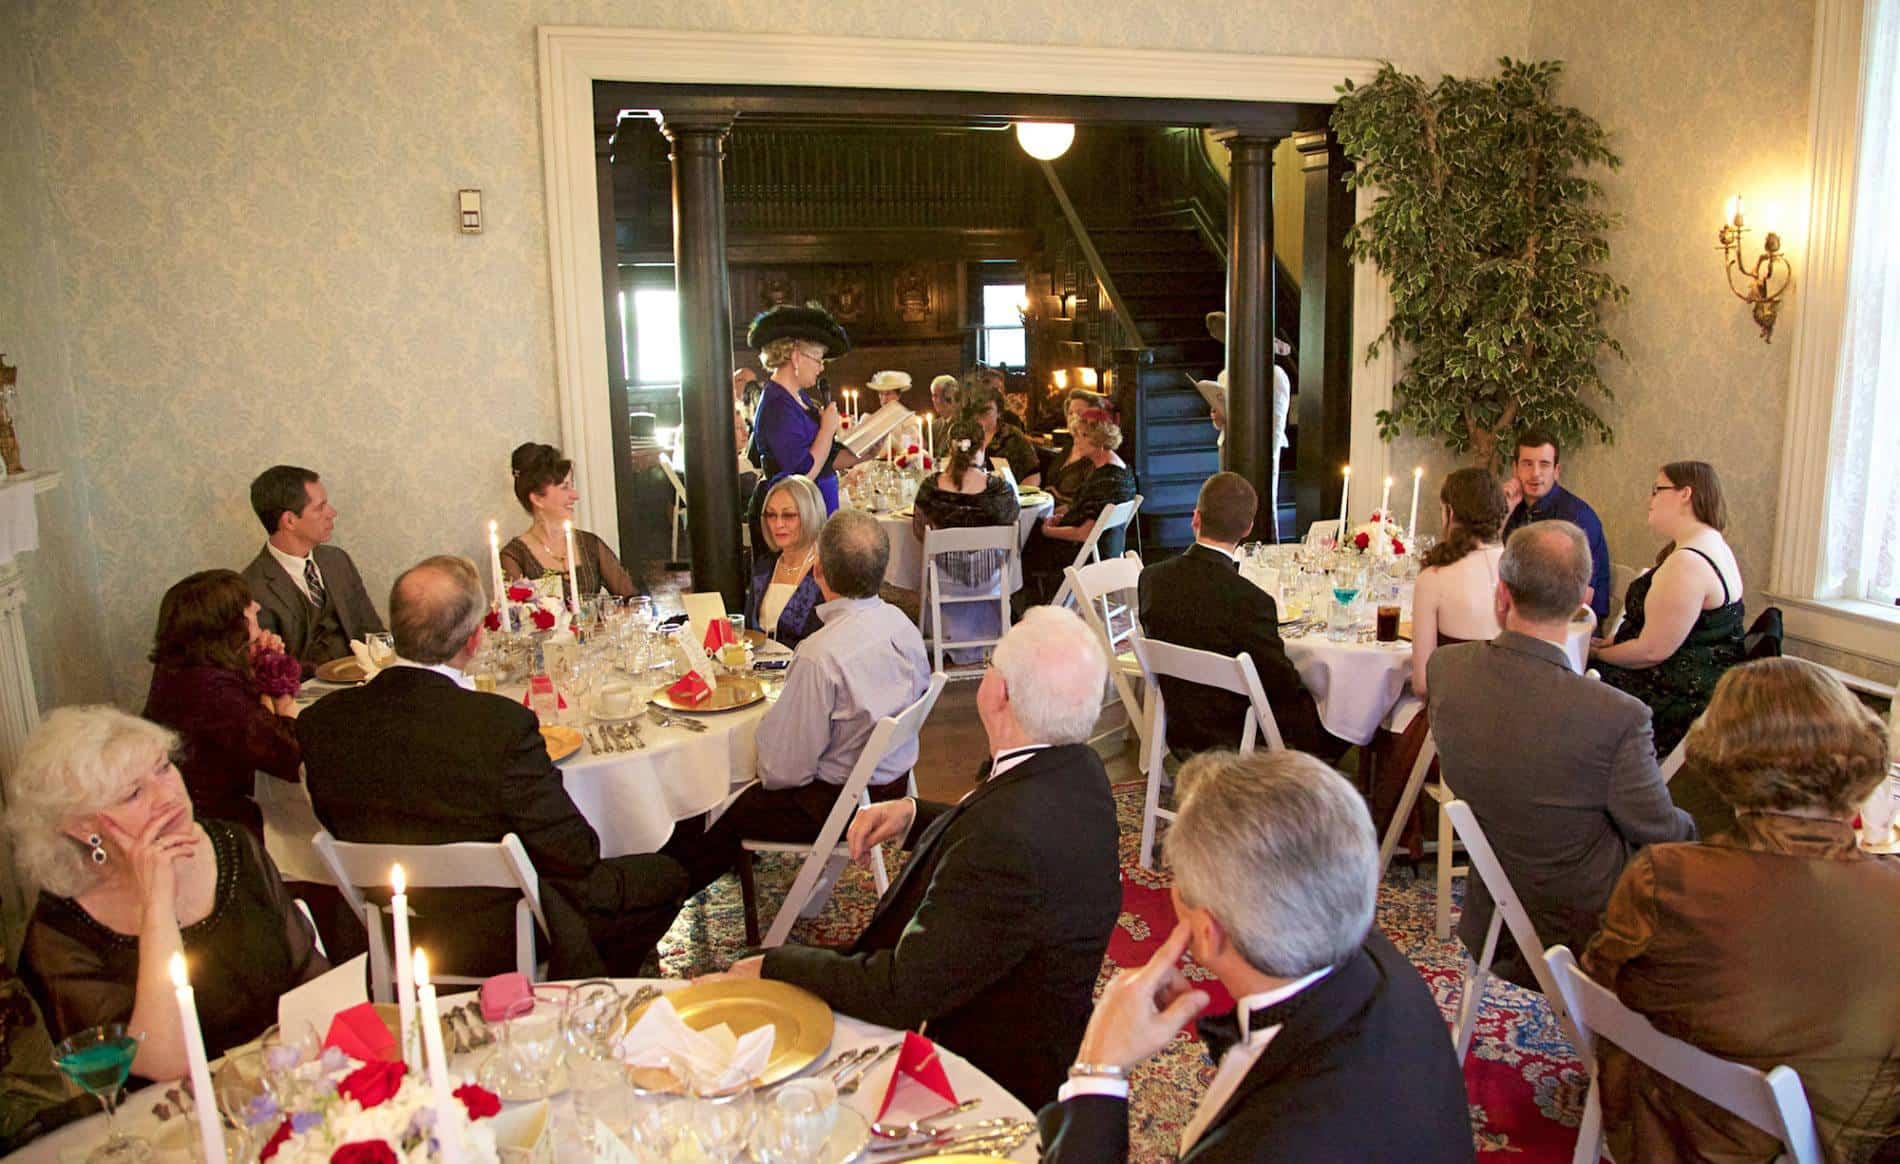 Large group of well-dressed people sitting at white tables set for a meal